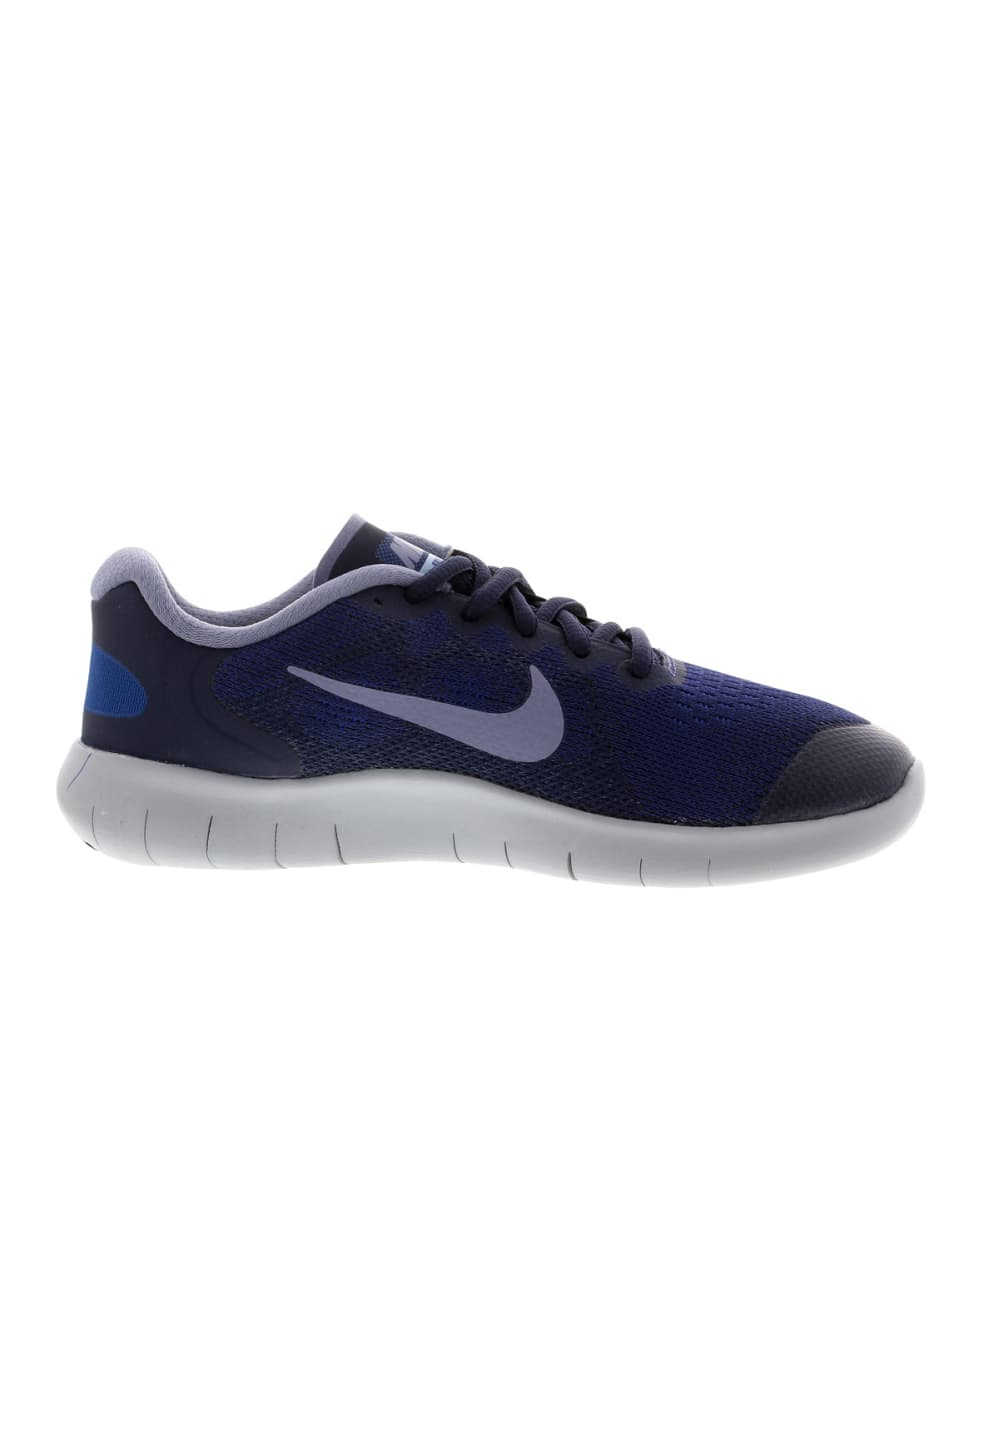 ba7840d057fff Next. -60%. This product is currently out of stock. Nike. Free RN 2017 GS  Boys - Running shoes